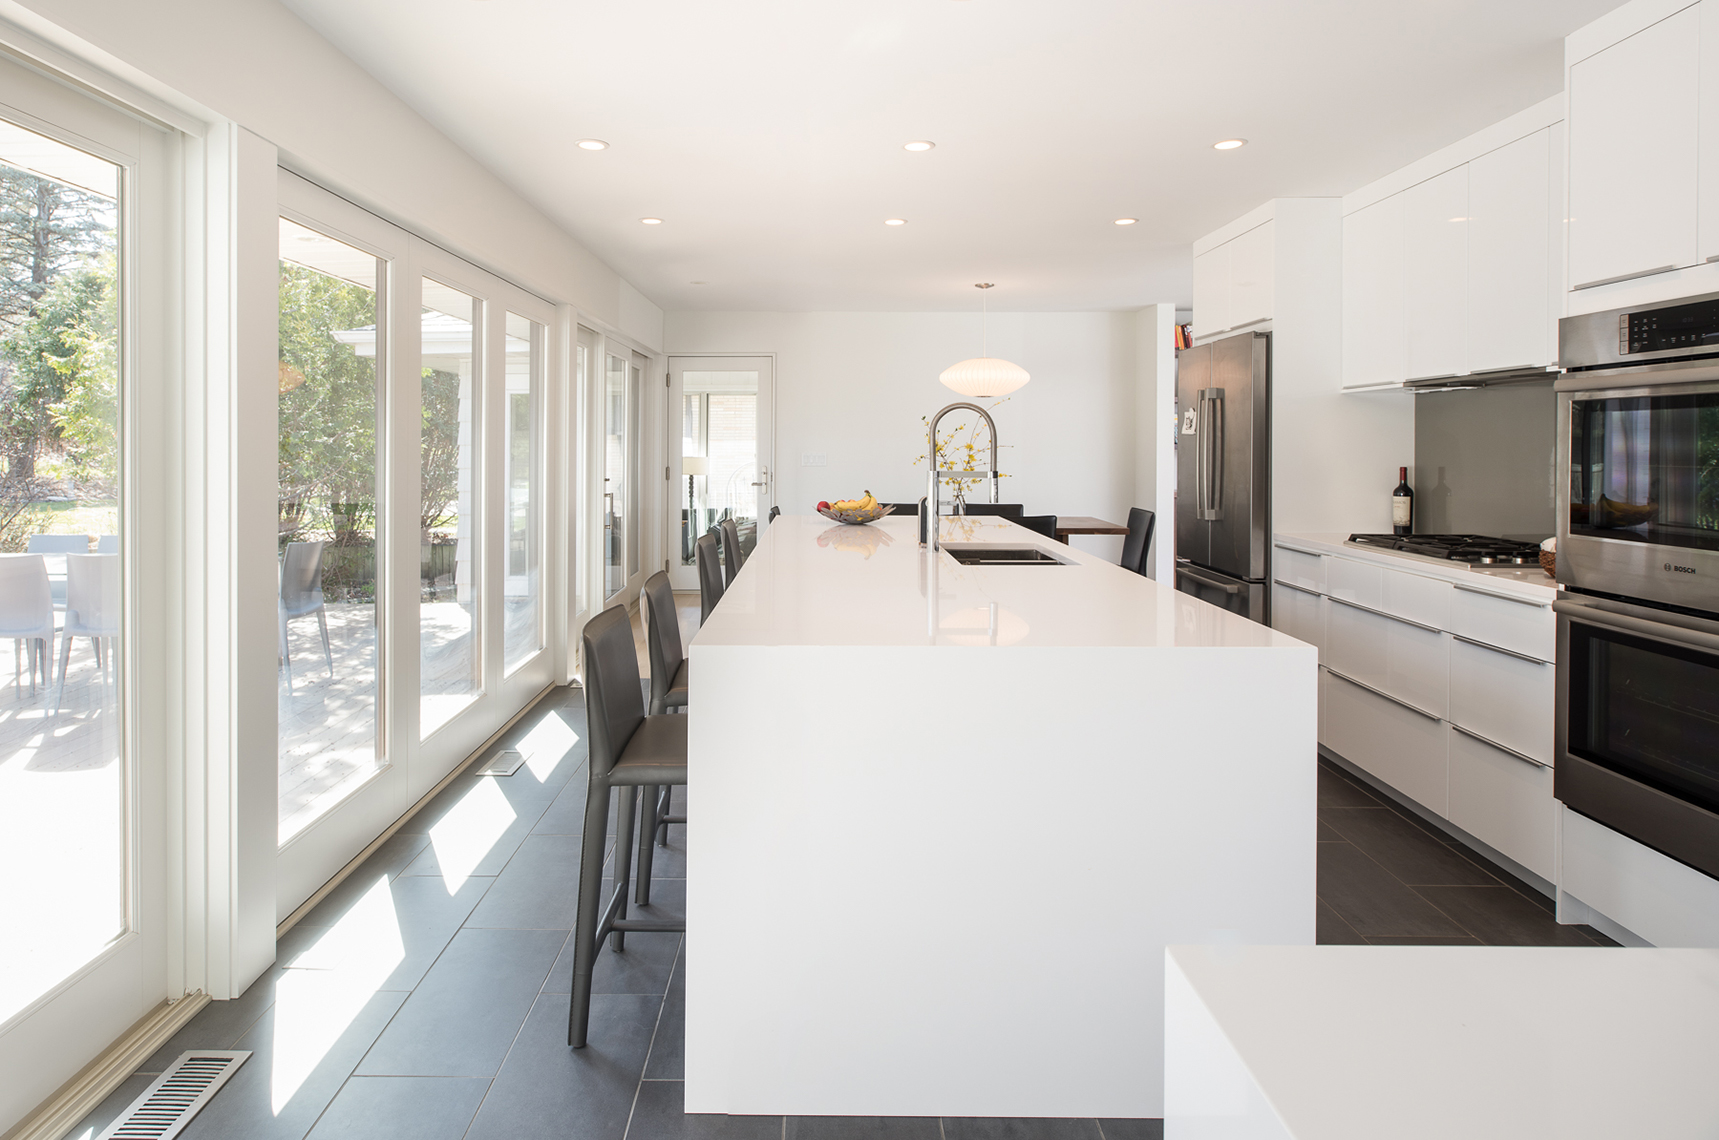 Modern white kitchen renovation in St. Paul, Minnesota by Christian Dean Architecture